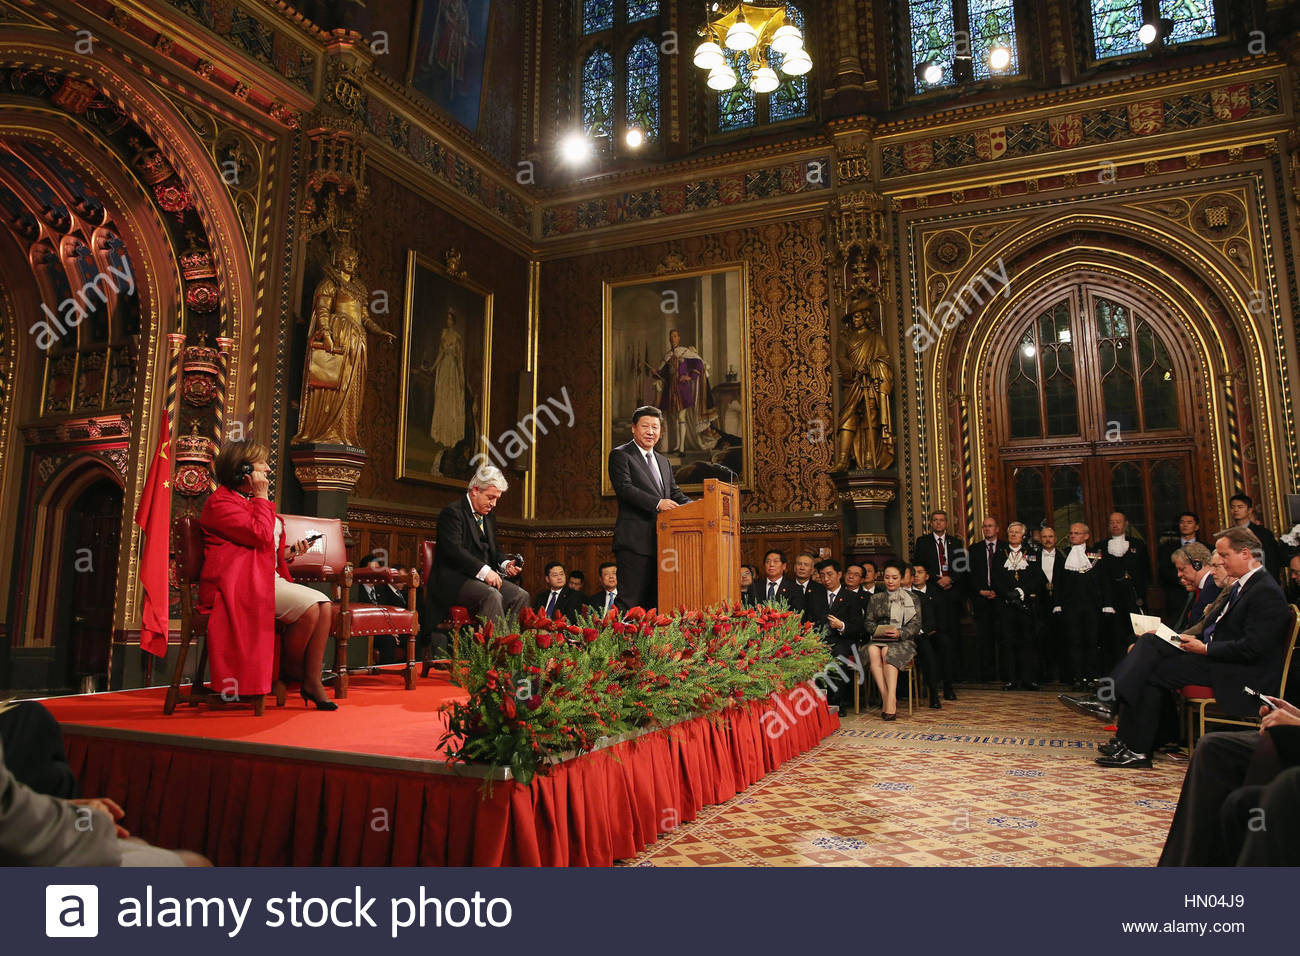 File photo dated 20/10/15 of China President Xi Jinping addressing MPs and peers in the Palace of Westminster's - Stock Image